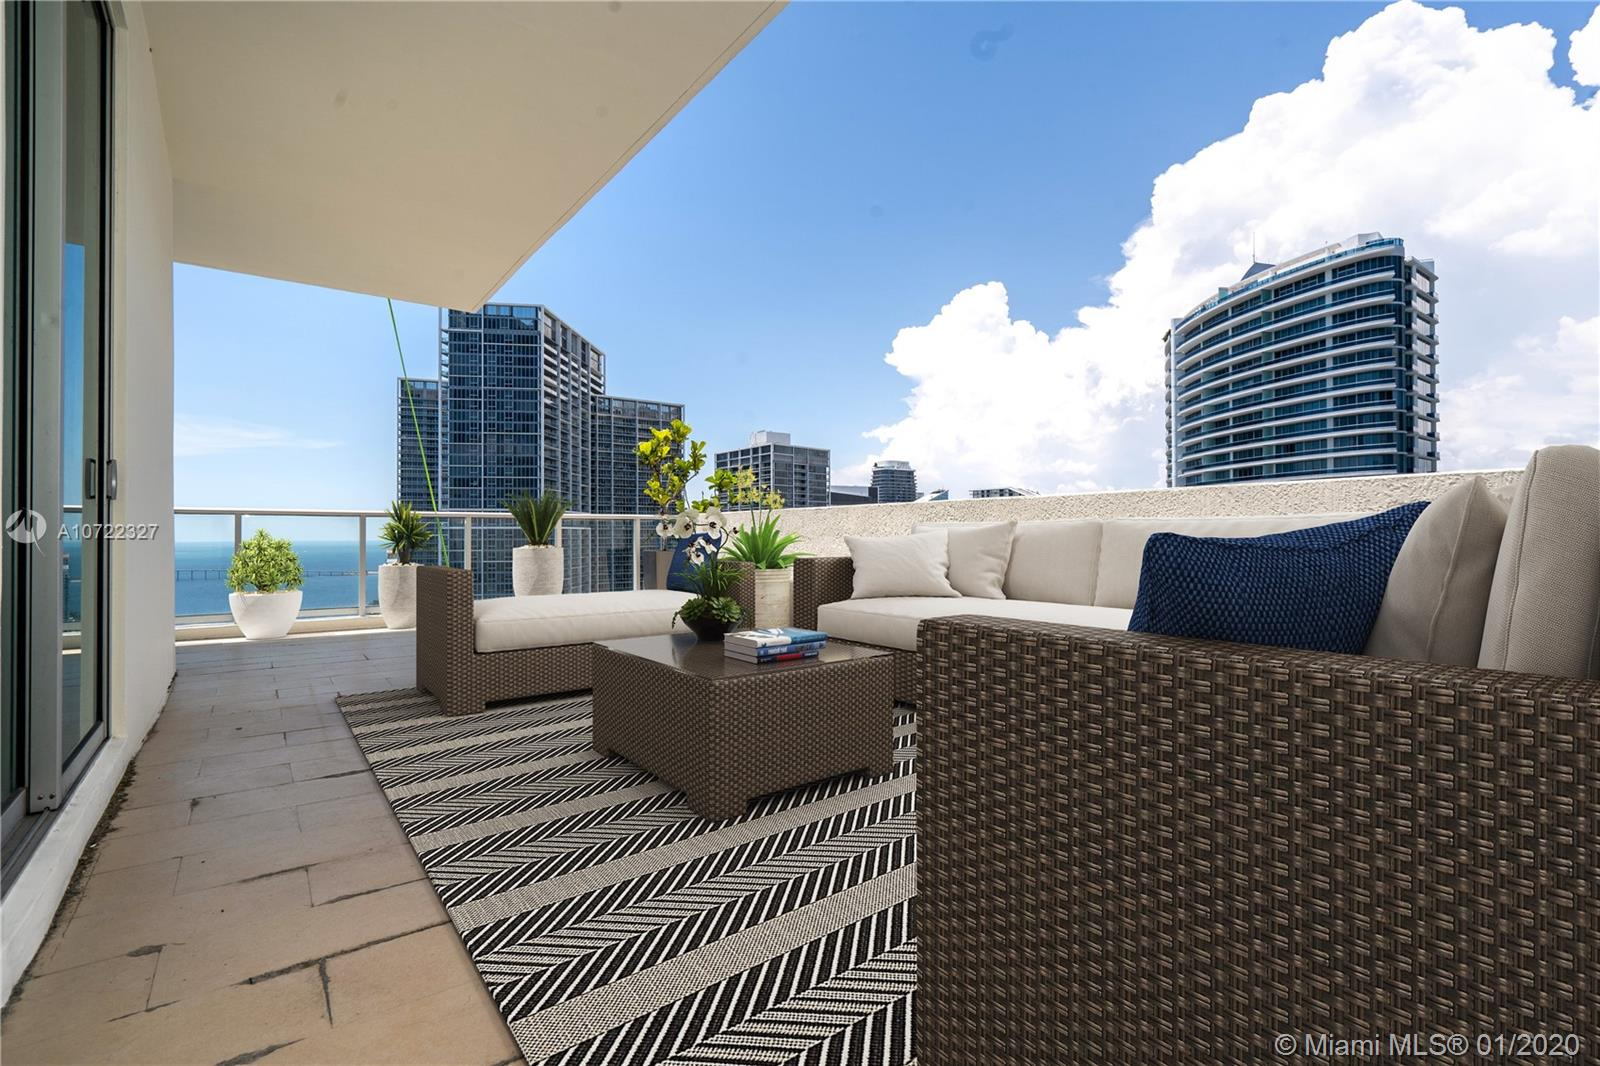 300 Biscayne blvd-PH 3802 miami-fl-33131-a10722327-Pic10